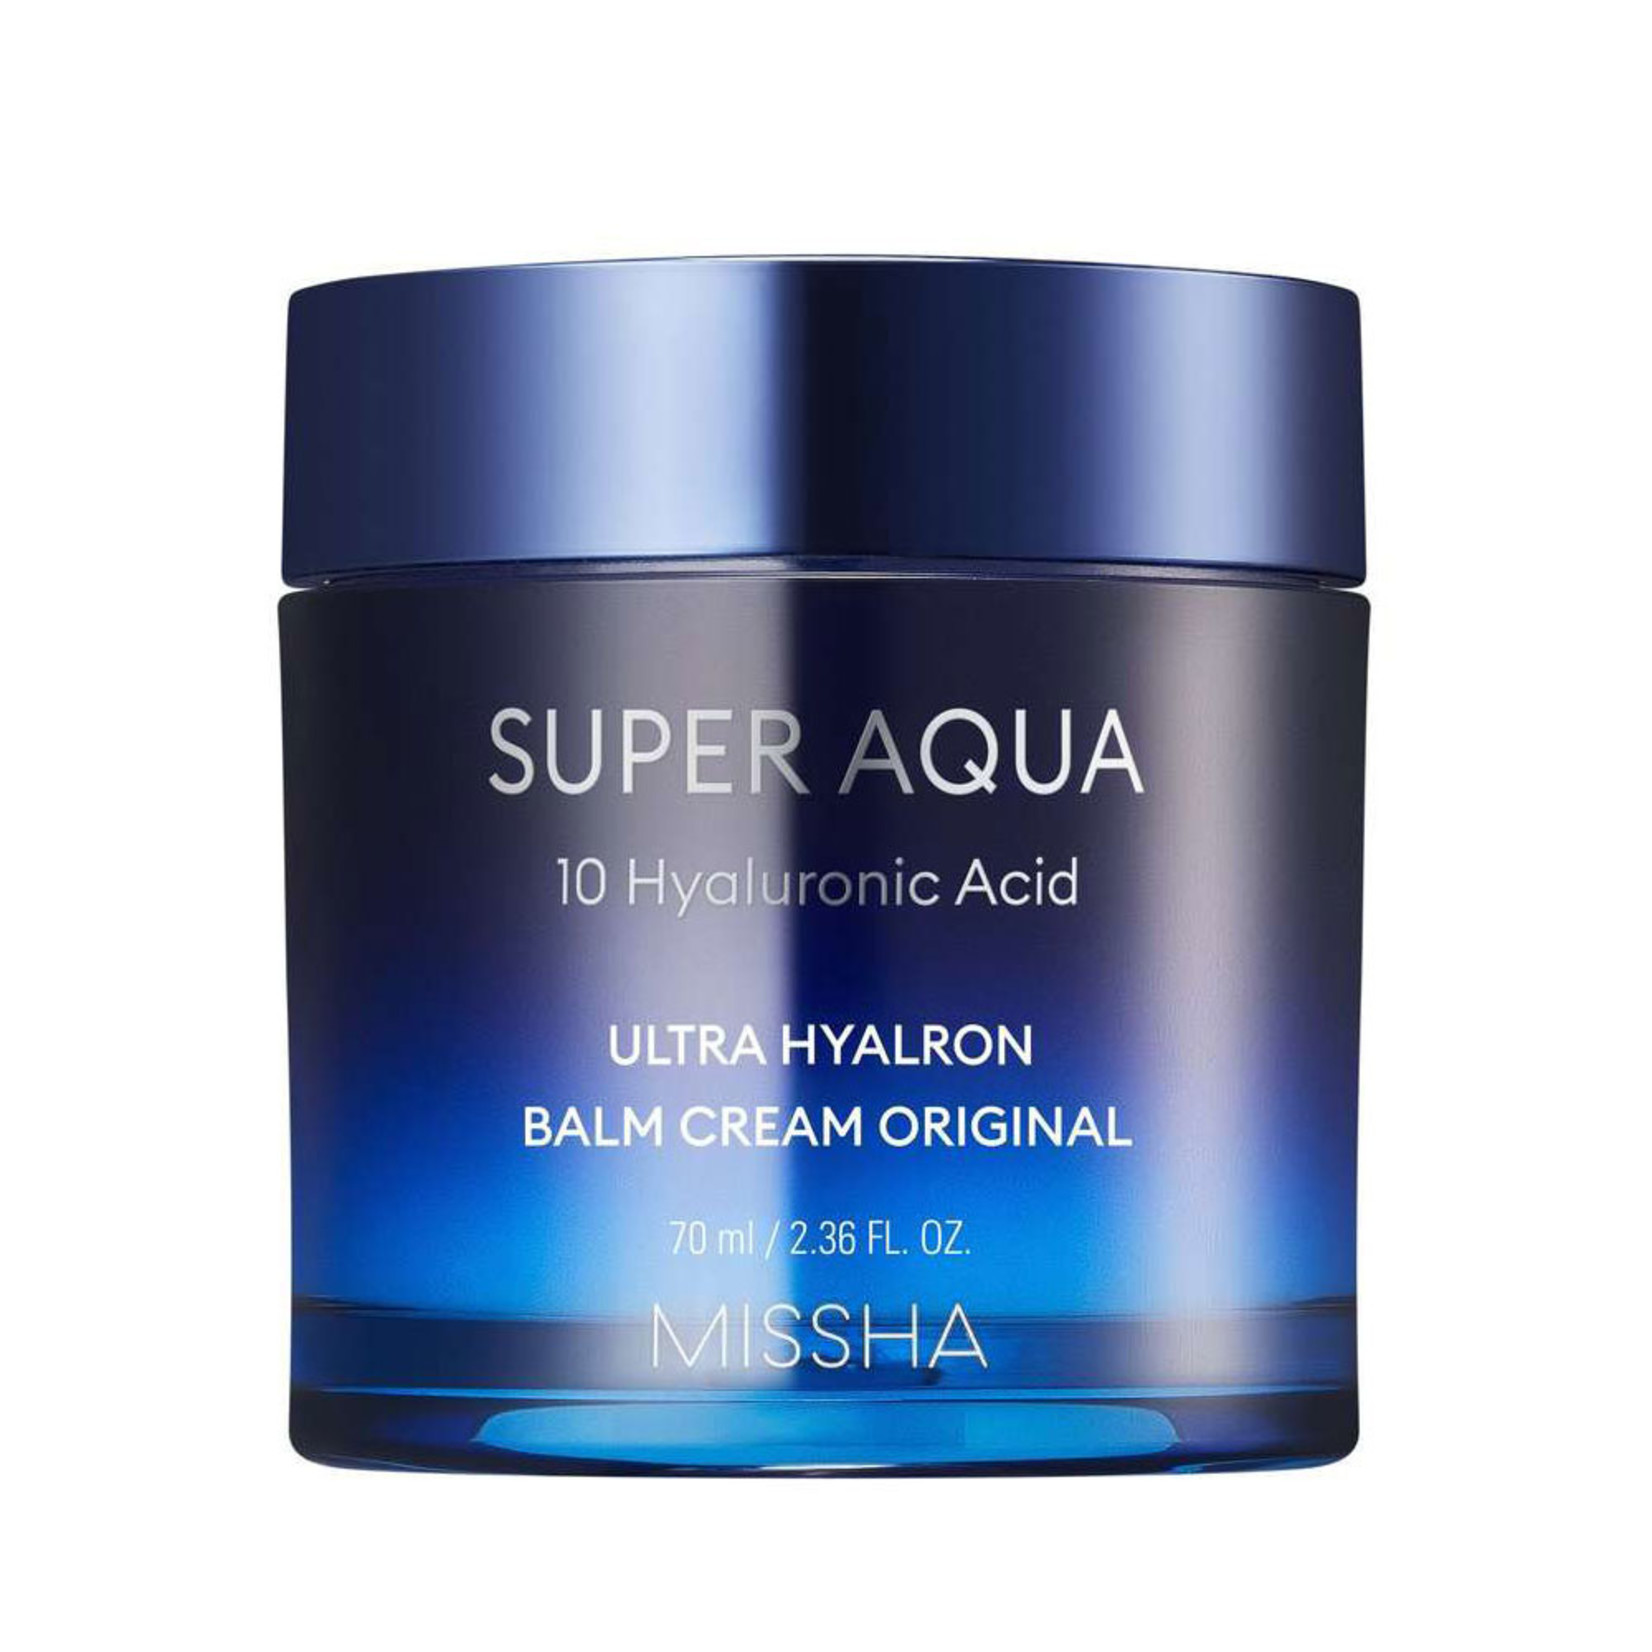 Missha Super Aqua Ultra Hyalron Cream